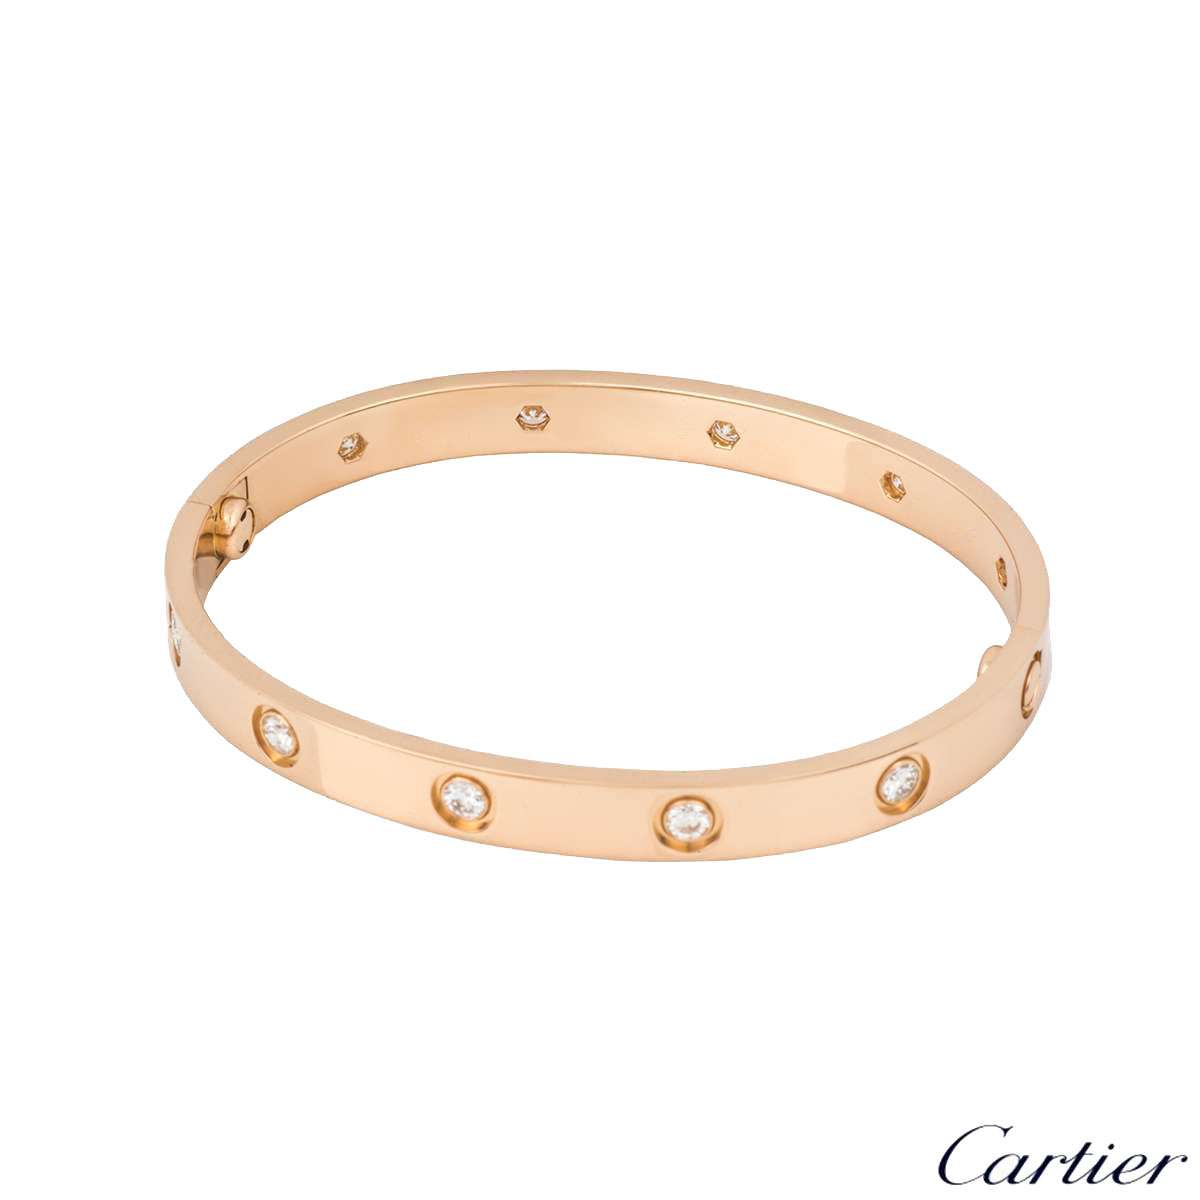 Cartier Rose Gold Full Diamond Love Bracelet Size 18 B6040618